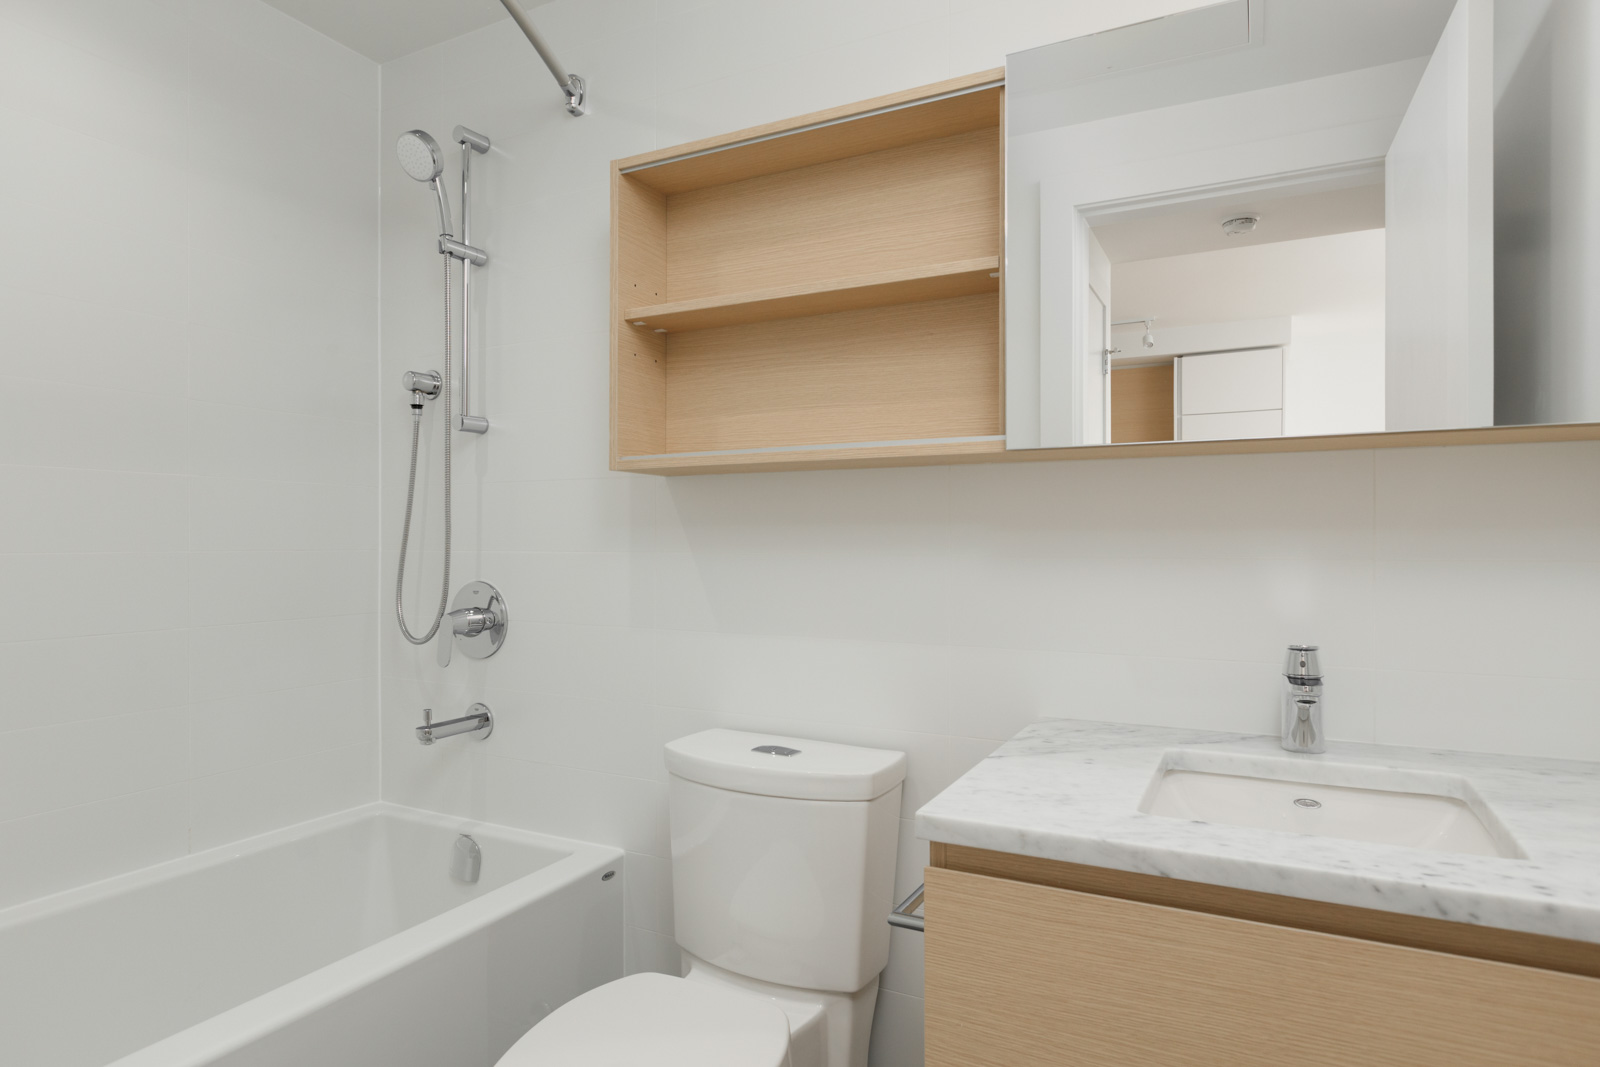 Bathroom with modern fixtures, porcelain toilet and quartz counter tops with wall shelving units and a mirror in a new condo in Coquitlam managed by Birds Nest Properties in Vancouver